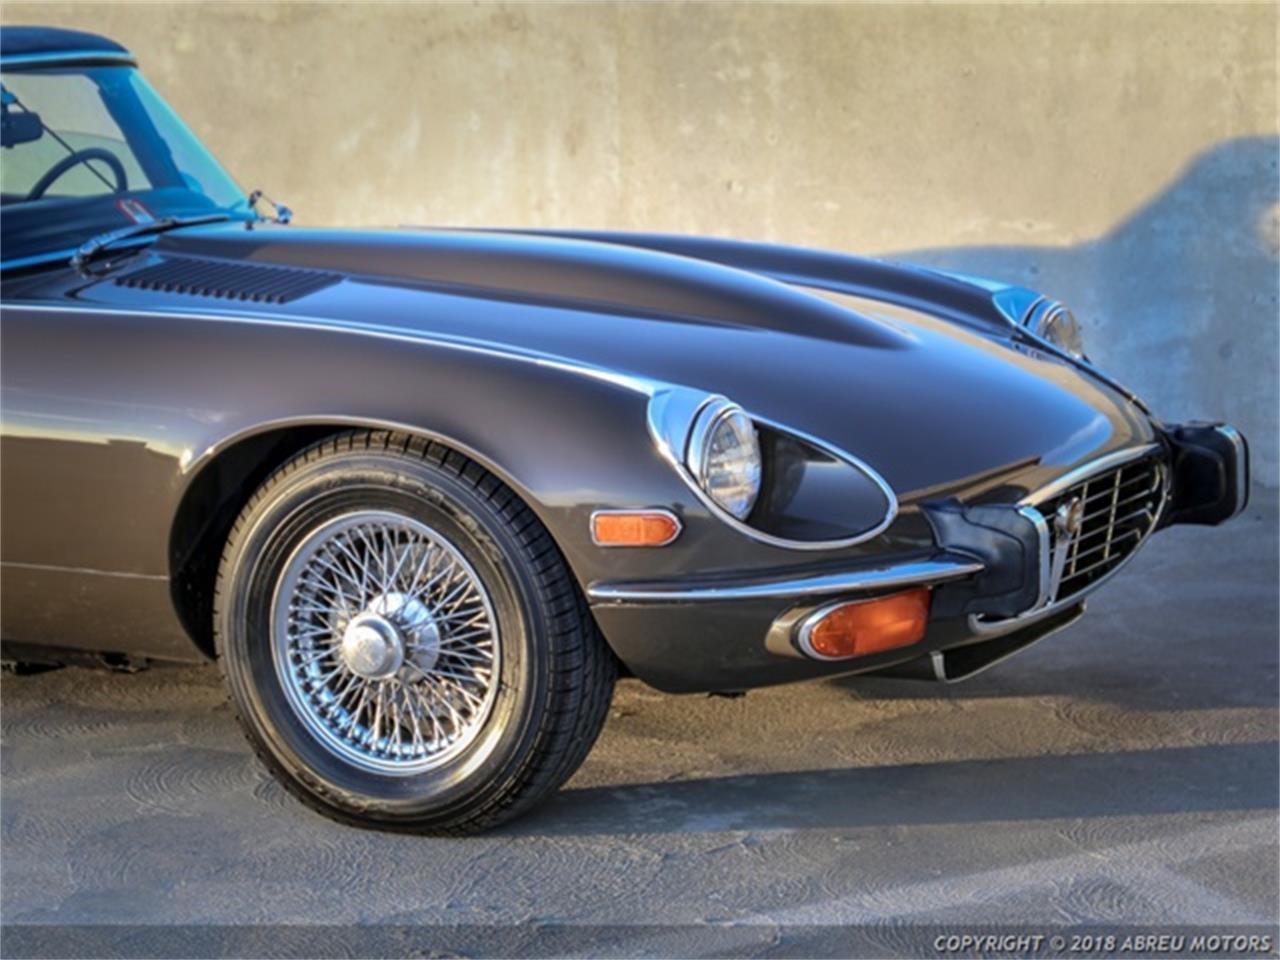 Large Picture of Classic 1973 Jaguar E-Type located in Carmel Indiana Auction Vehicle Offered by Abreu Motors - P7SJ